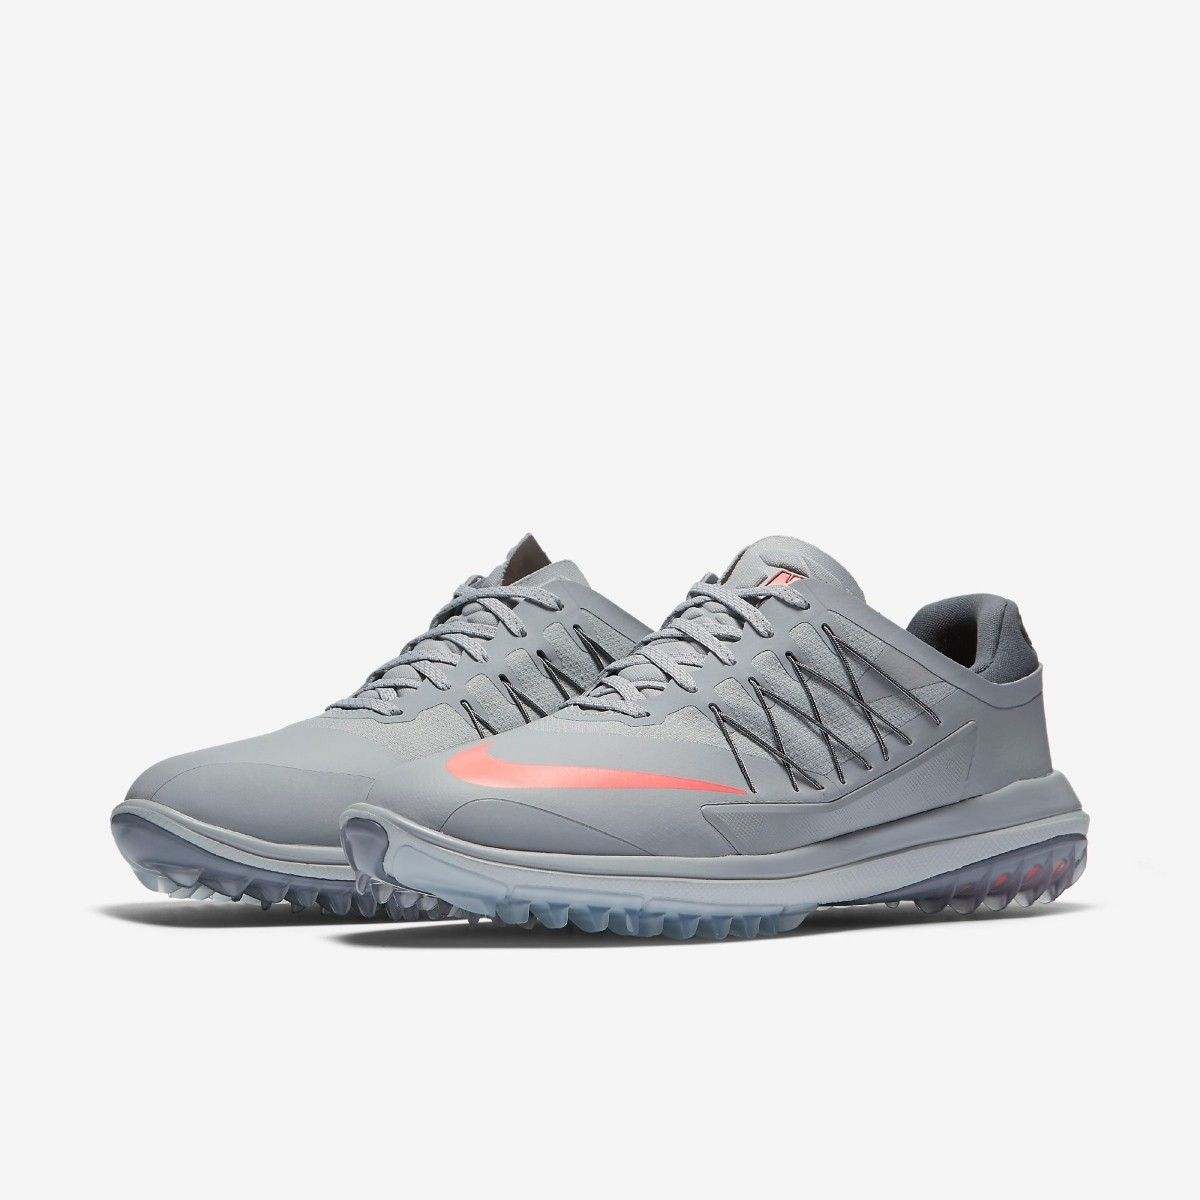 Nike Lunar Control Vapor Golf Shoe - Grey